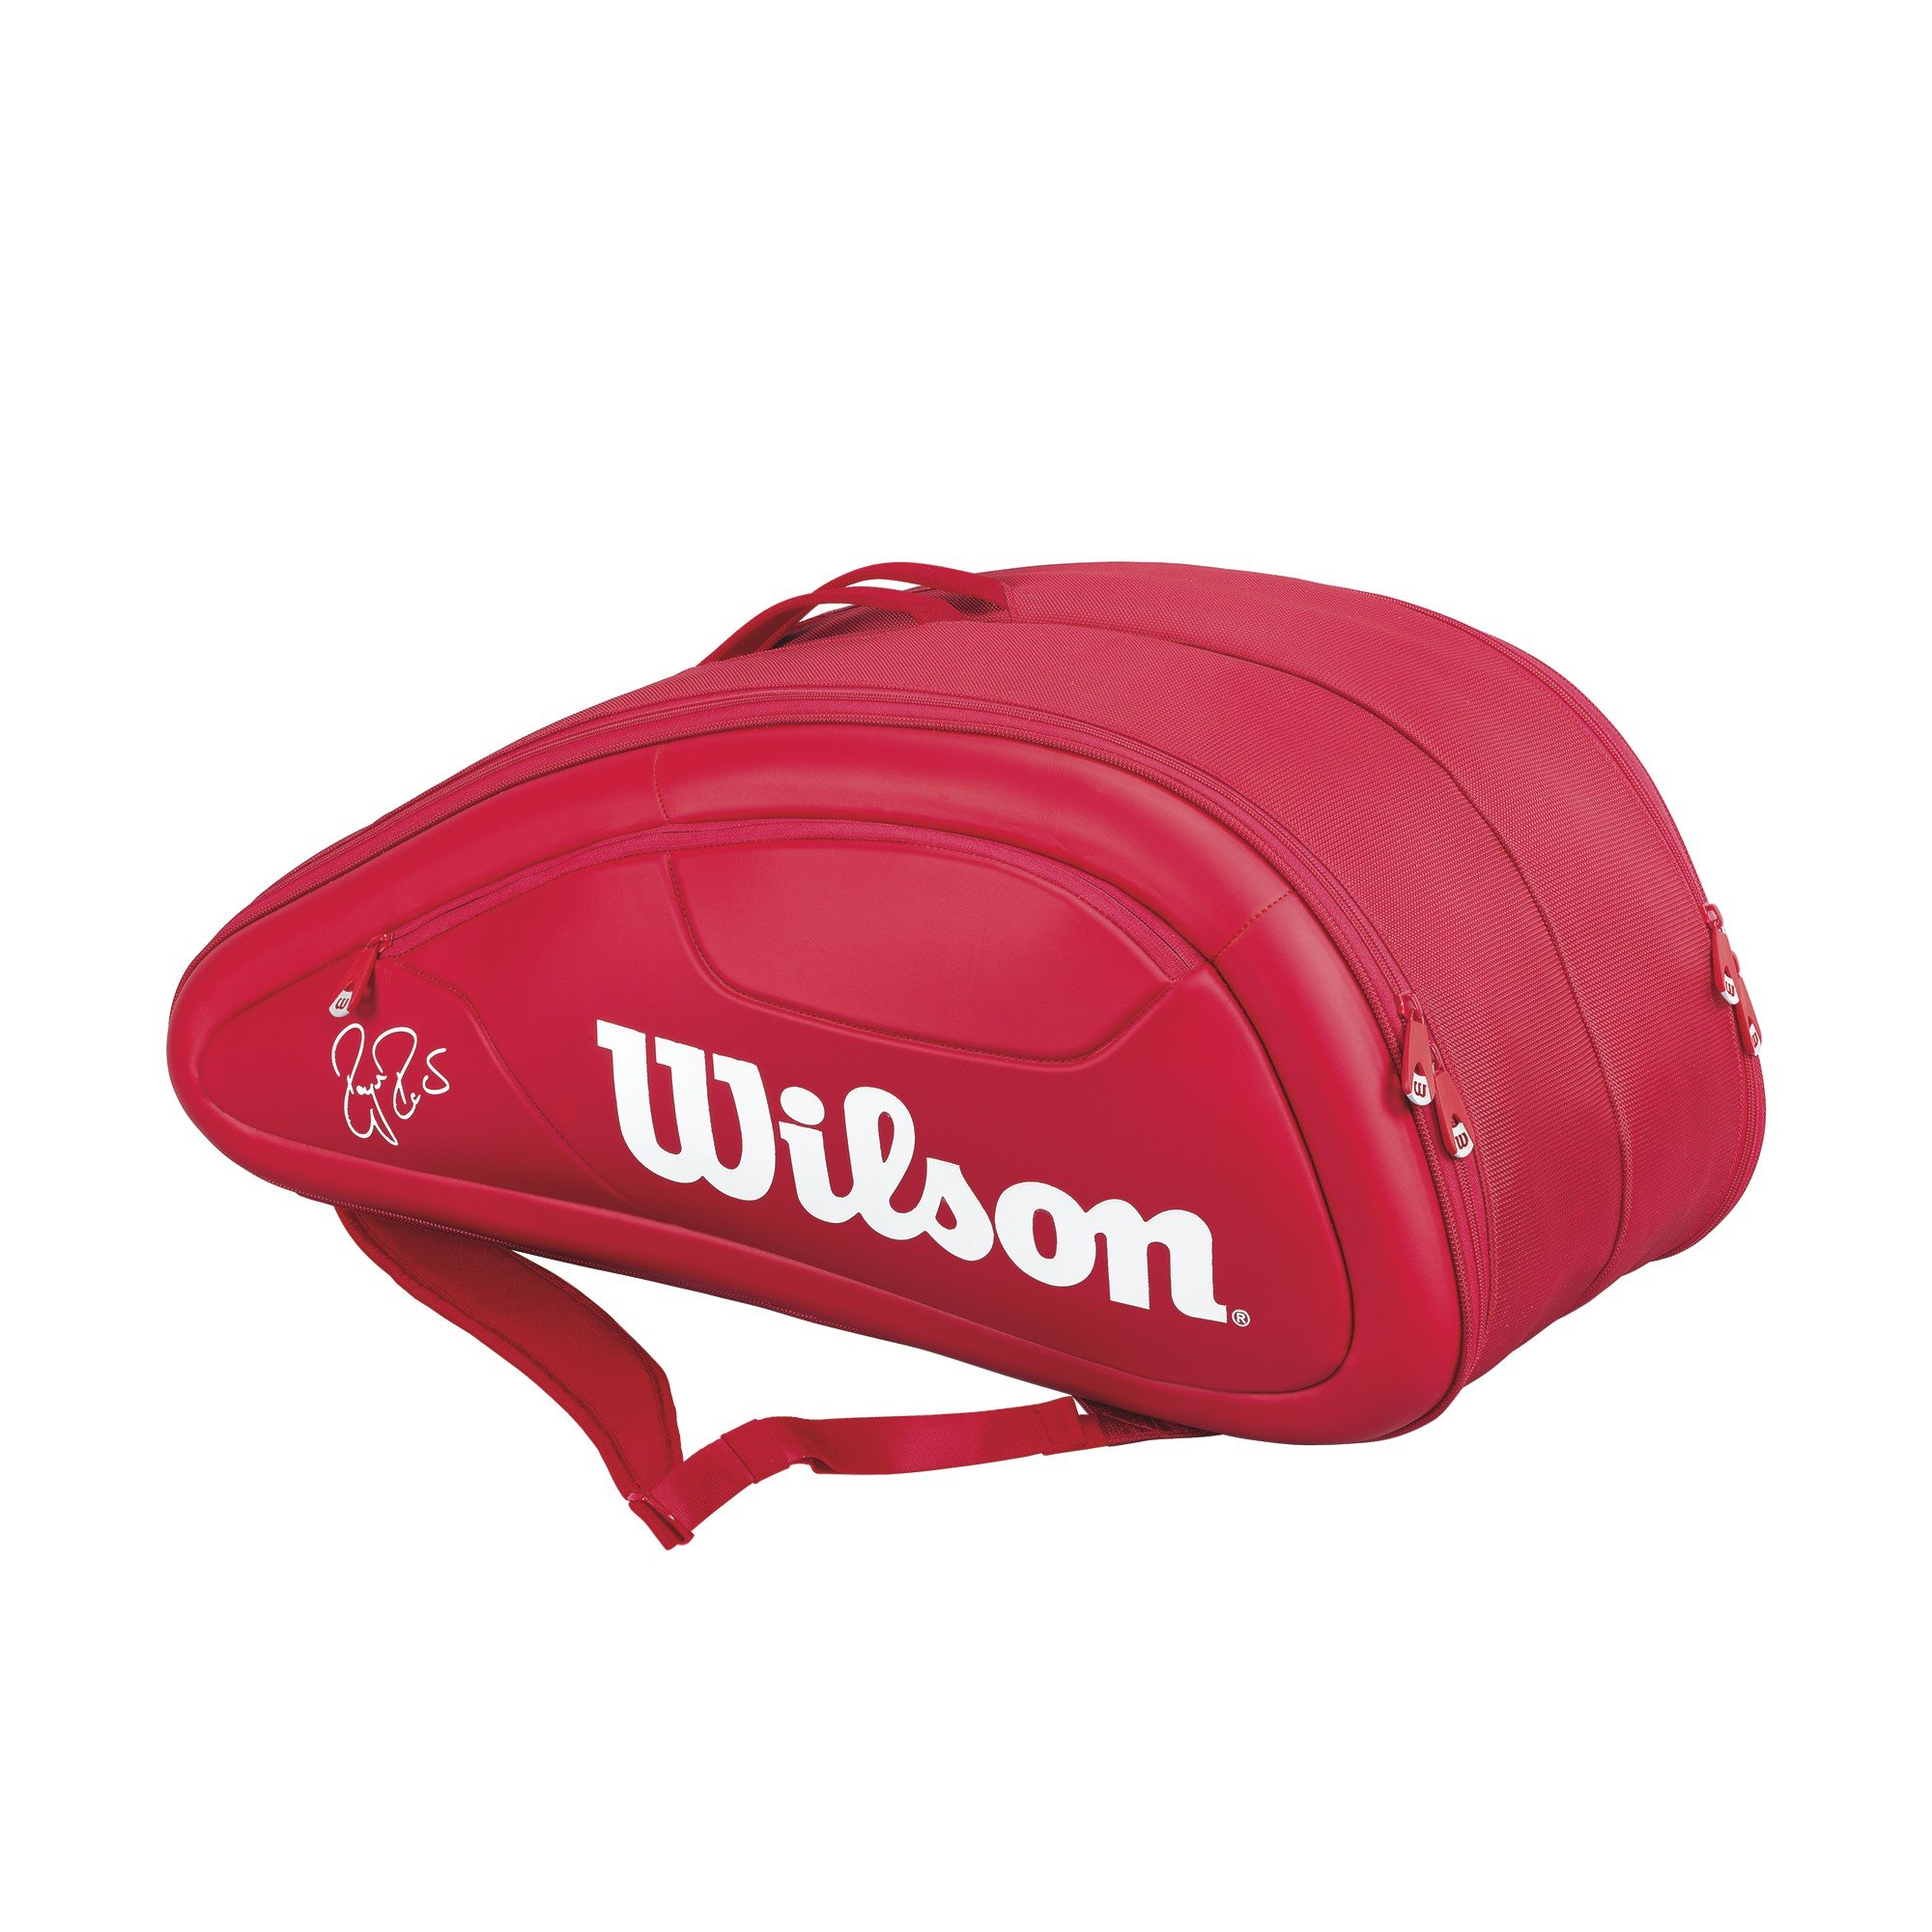 Wilson Federer DNA Collection Racket Bag (Holds up to 12), Red by Wilson (Image #1)